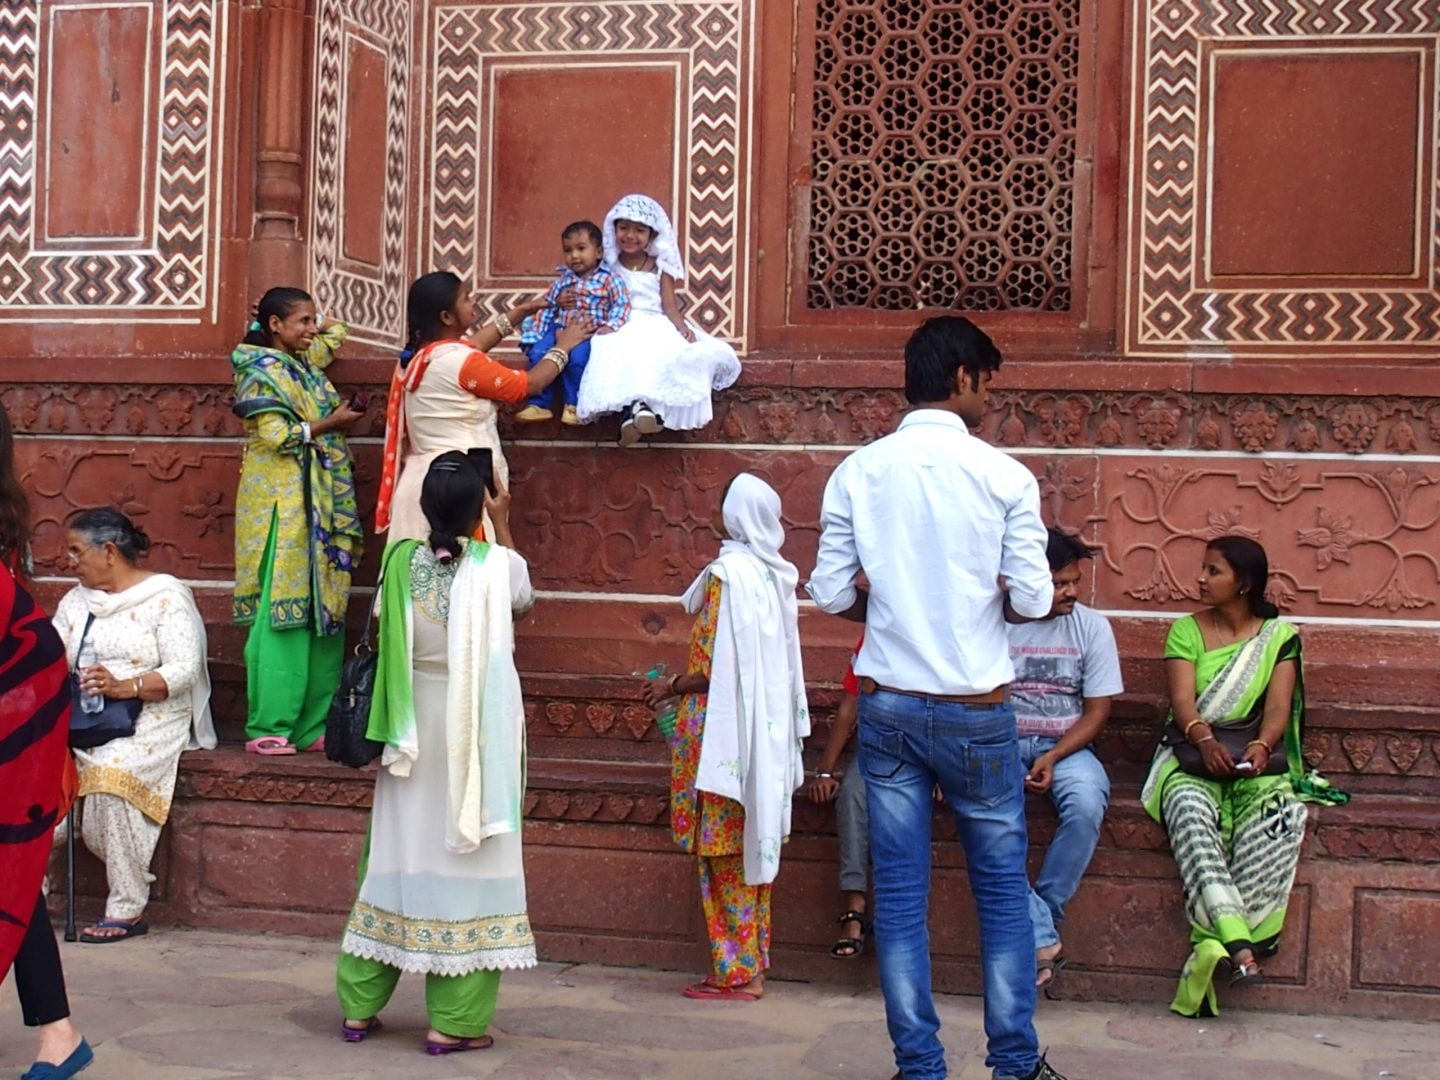 Pause photo dans le fort rouge d'Agra Inde